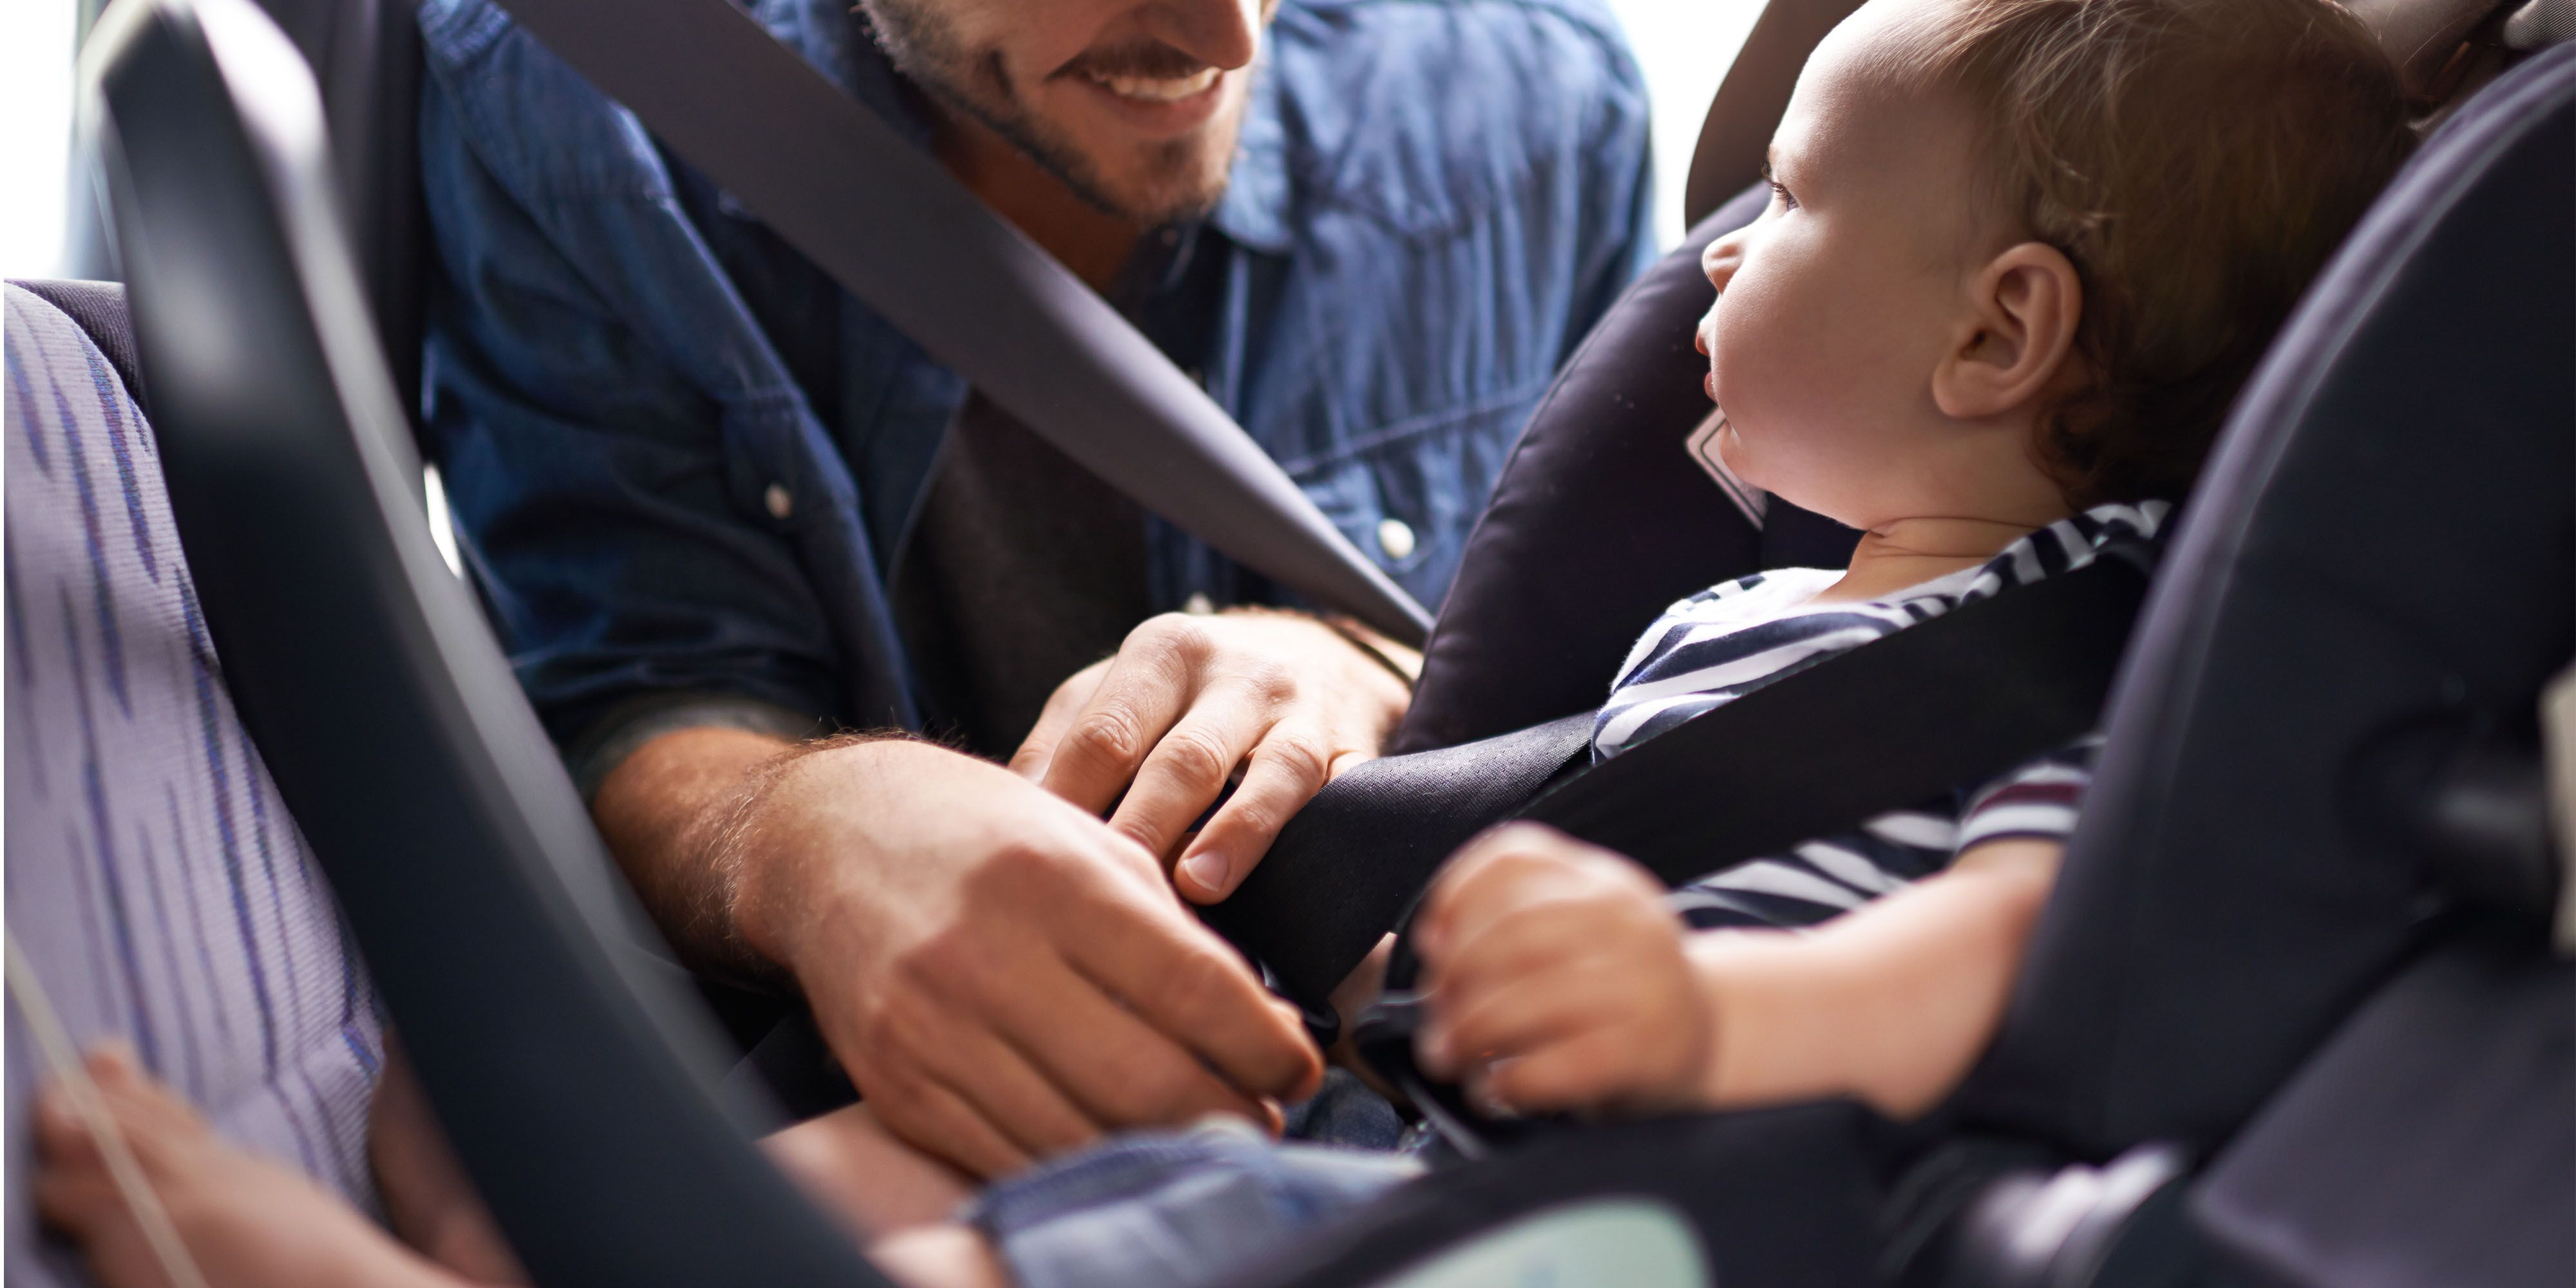 Rear Facing Car Seat Law Nj California Rear Facing Car Seat Law Kids Under Two Years